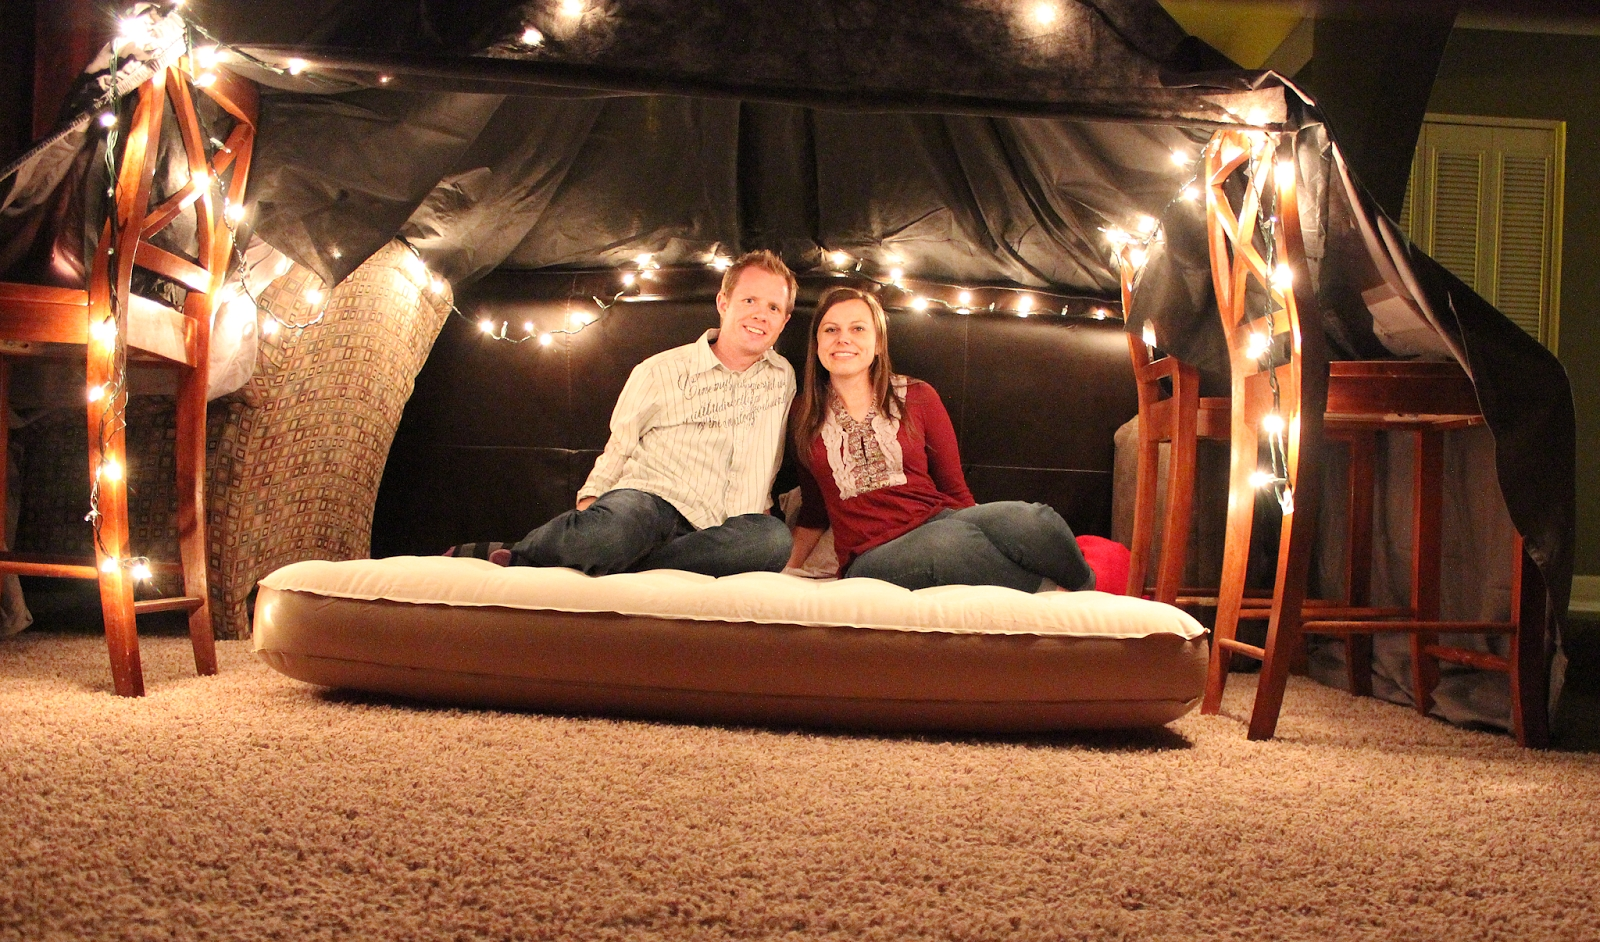 10 Unique Romantic At Home Date Ideas romantic date ideas at home for him dazzling romantic date ideas at